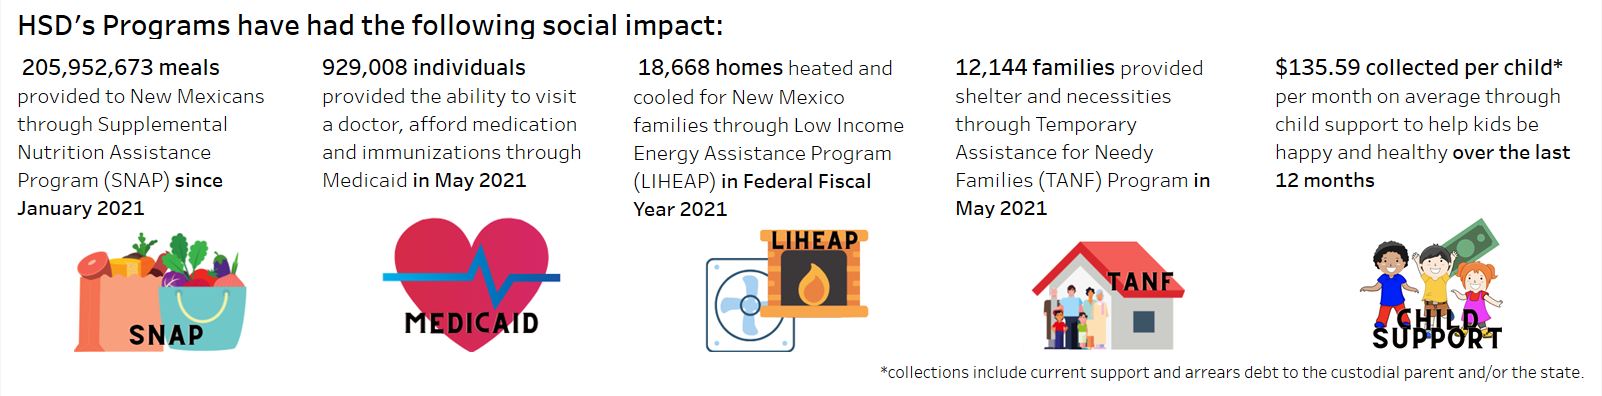 A visualization of HSD's social impact measures is shown. These measures translate HSD customer cases processed into the impact on the communities we serve. The total amount of SNAP benefits issued are converted to an estimated number of meals provided to New Mexicans. The number of New Mexicans with access to healthcare is generated by looking a the number of individuals with Medicaid coverage. The total number of TANF cases shows how many families were provided shelter and other necessities. The total cases of LIHEAP support provided shows how many homes were heated and cooled for New Mexicans. Child support collections shows the amount supporting each individual child every month.